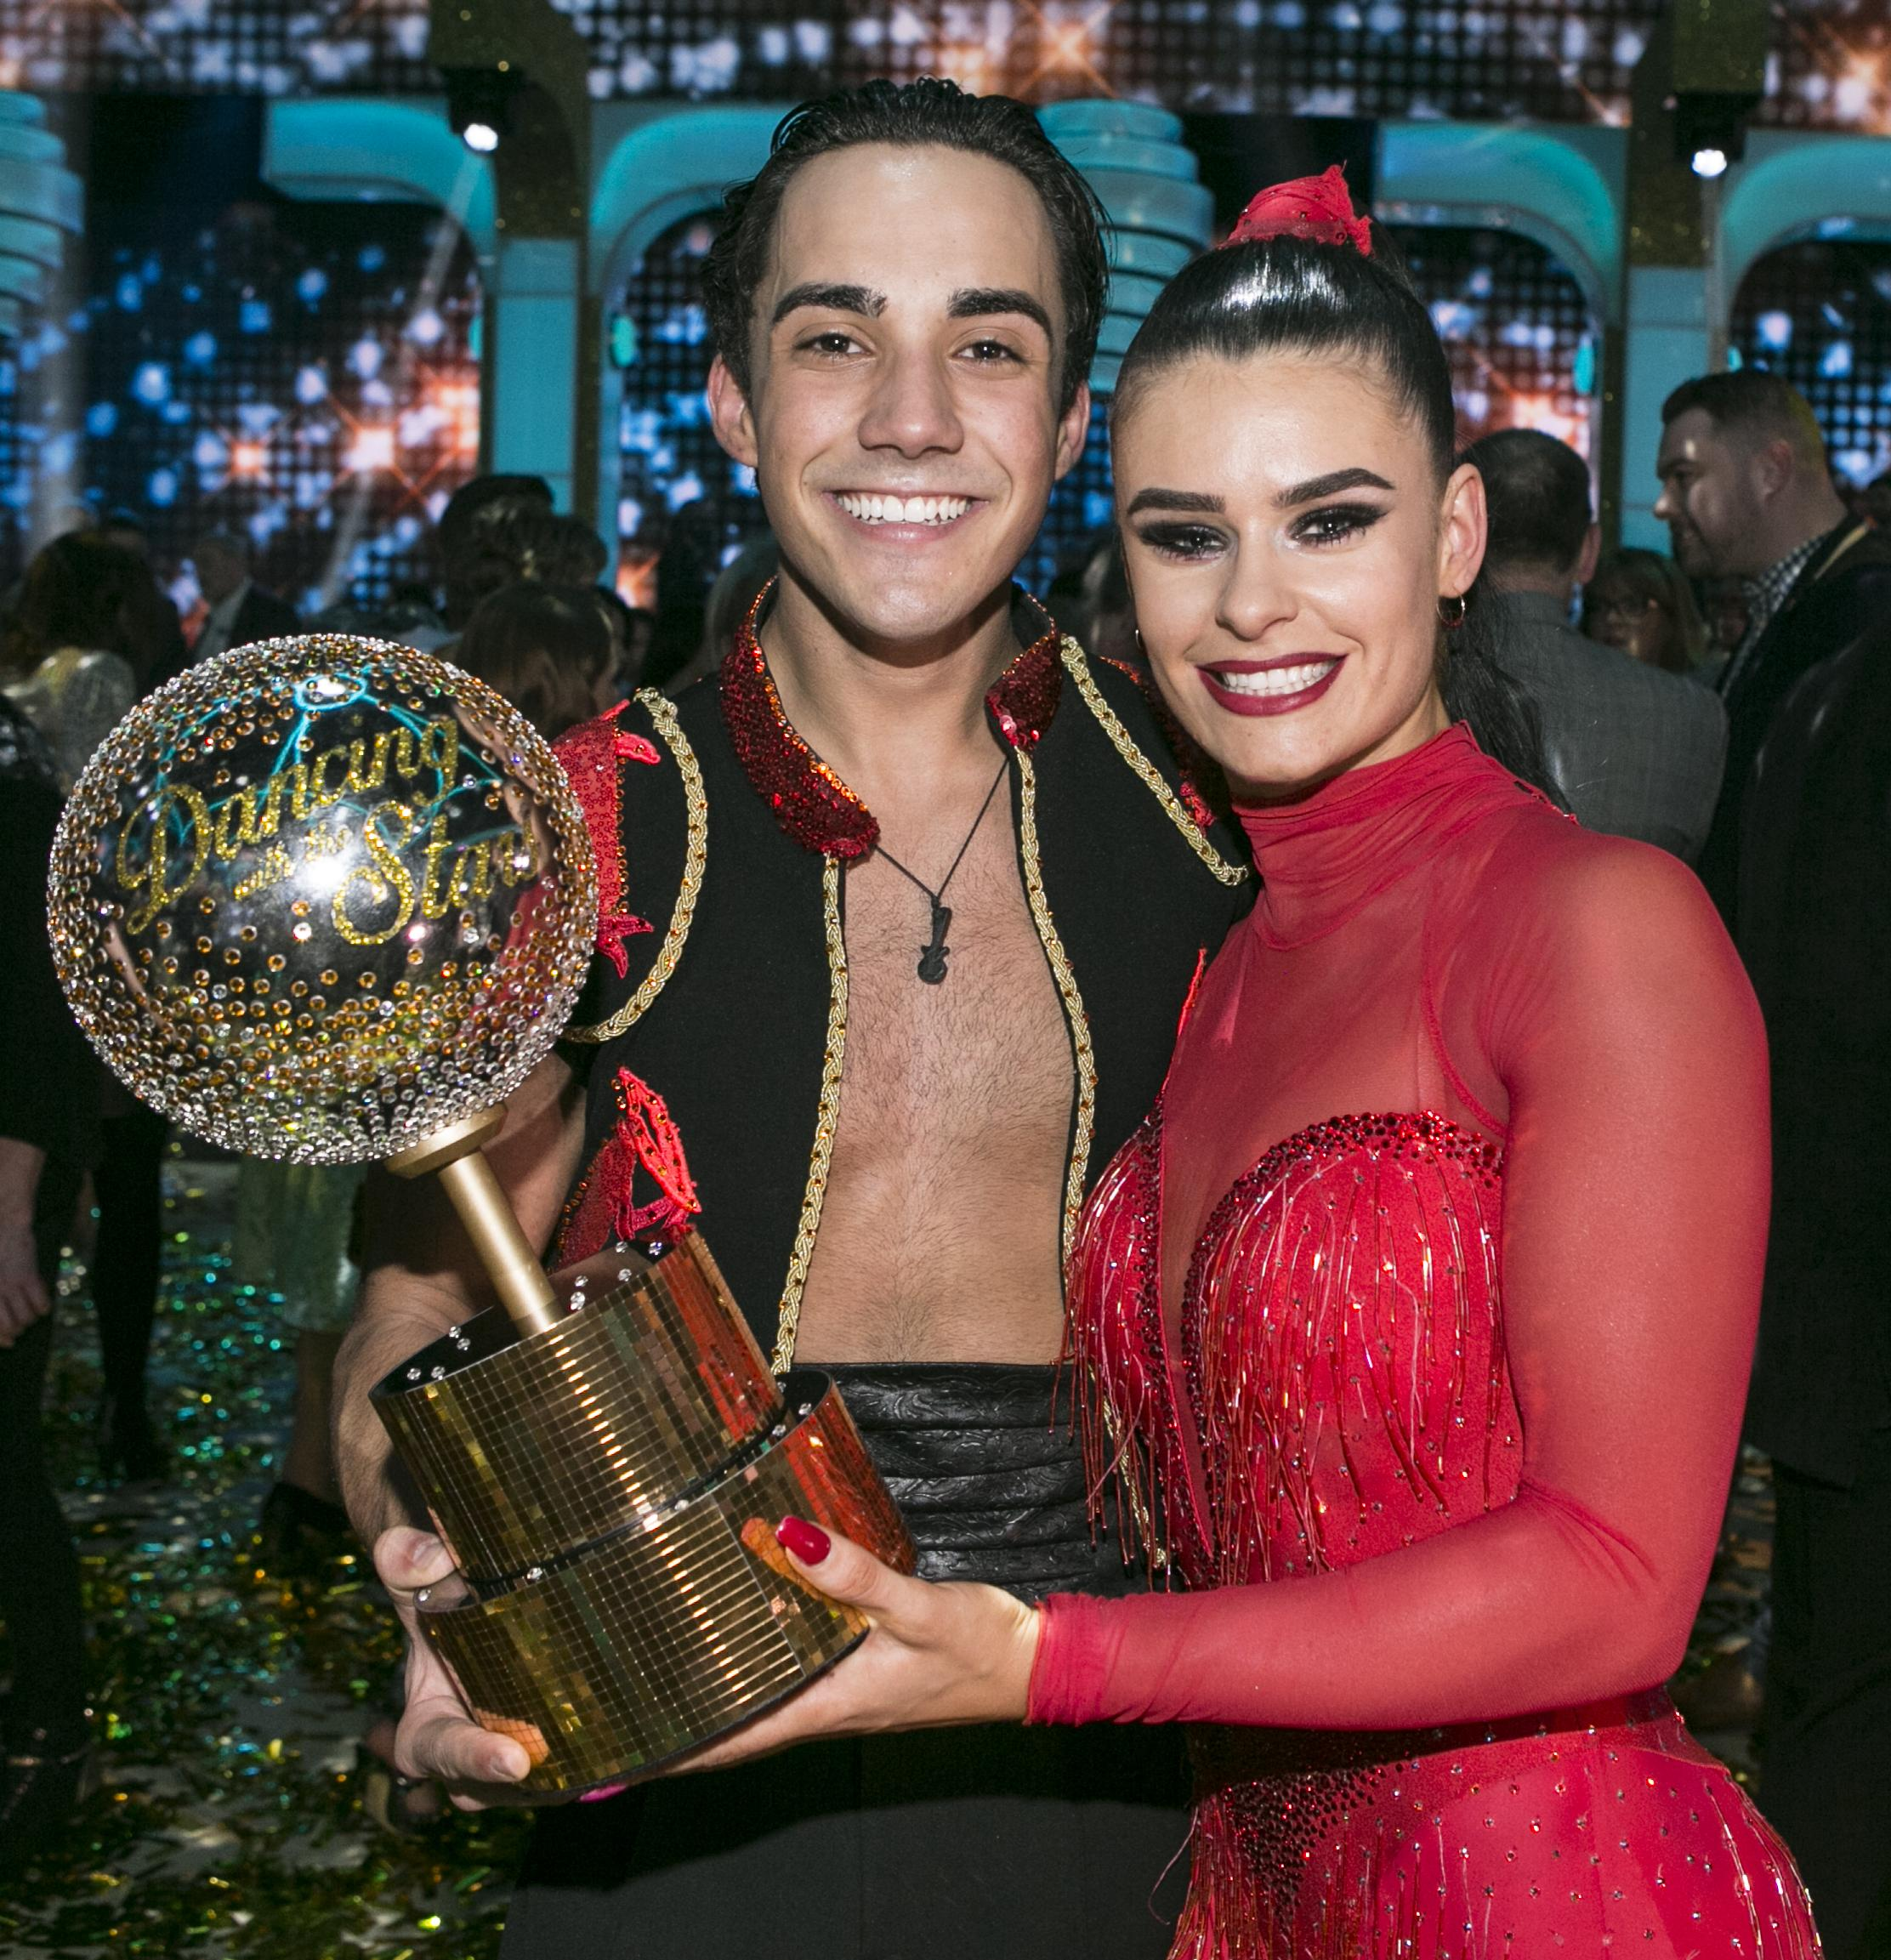 Different types of dating couples from dwts